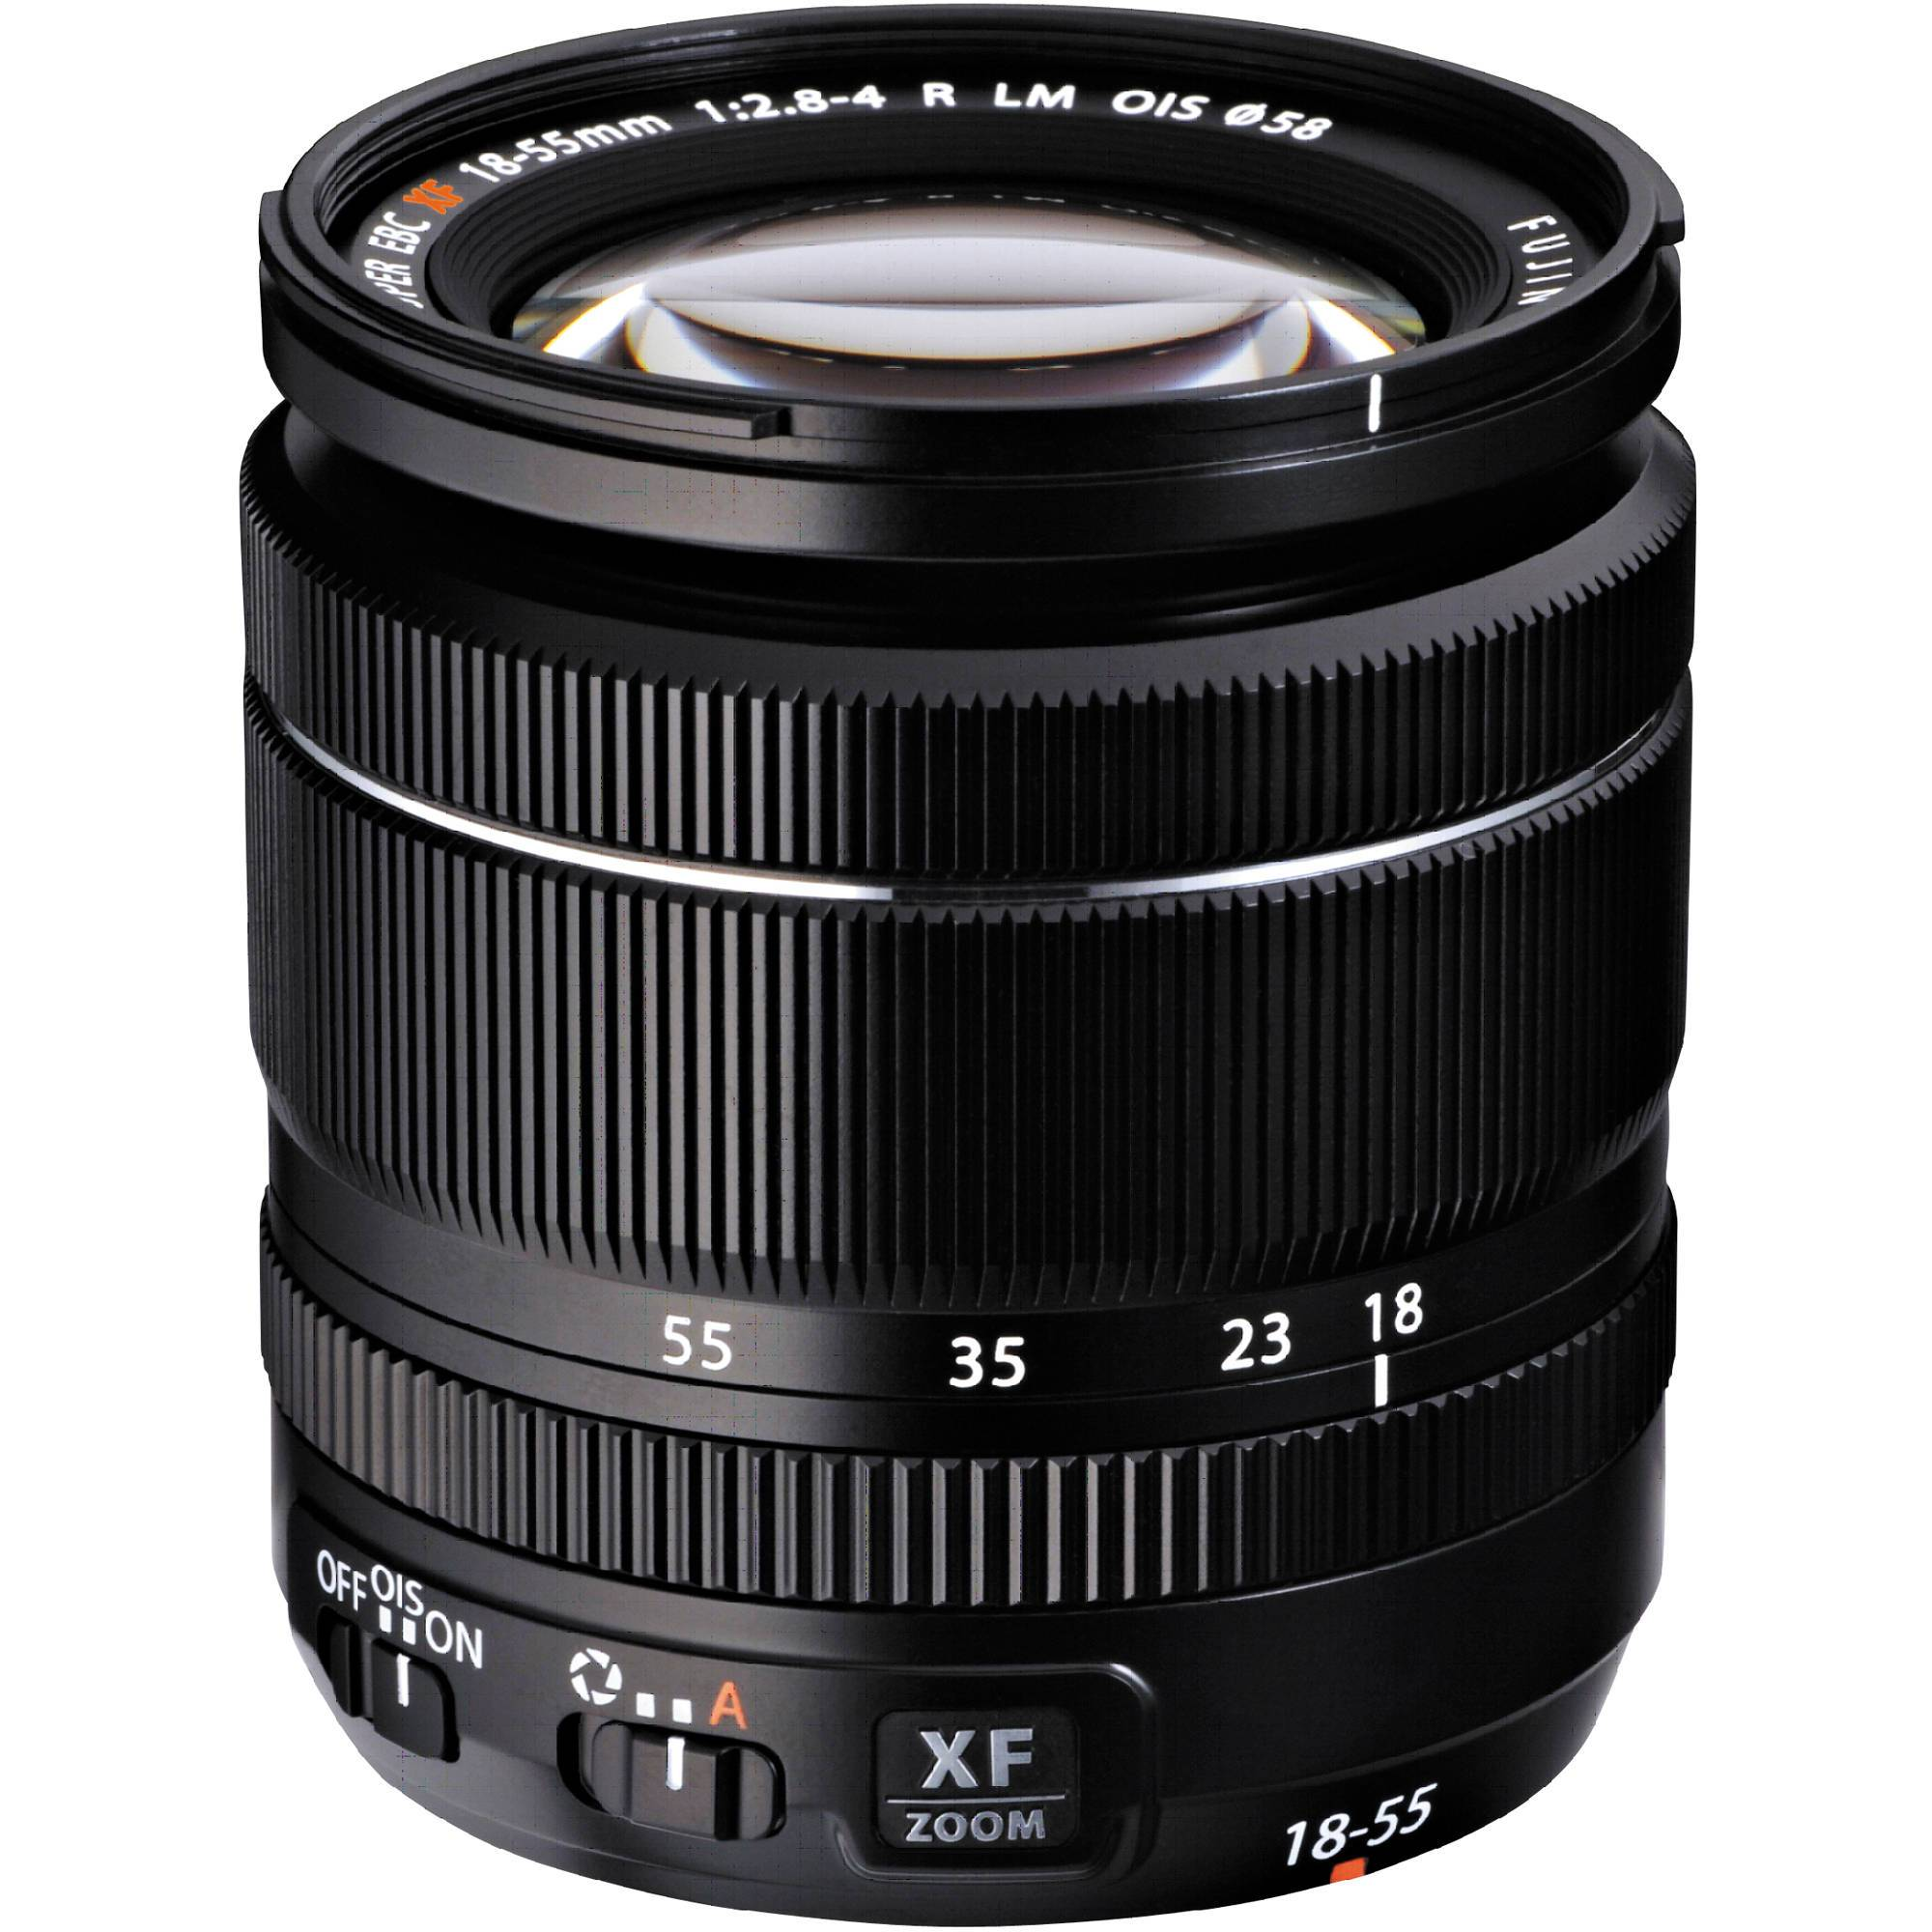 FUJINON – XF 18-55MM STANDARD ZOOM F2.8-F4 OIS LENS IN BLACK